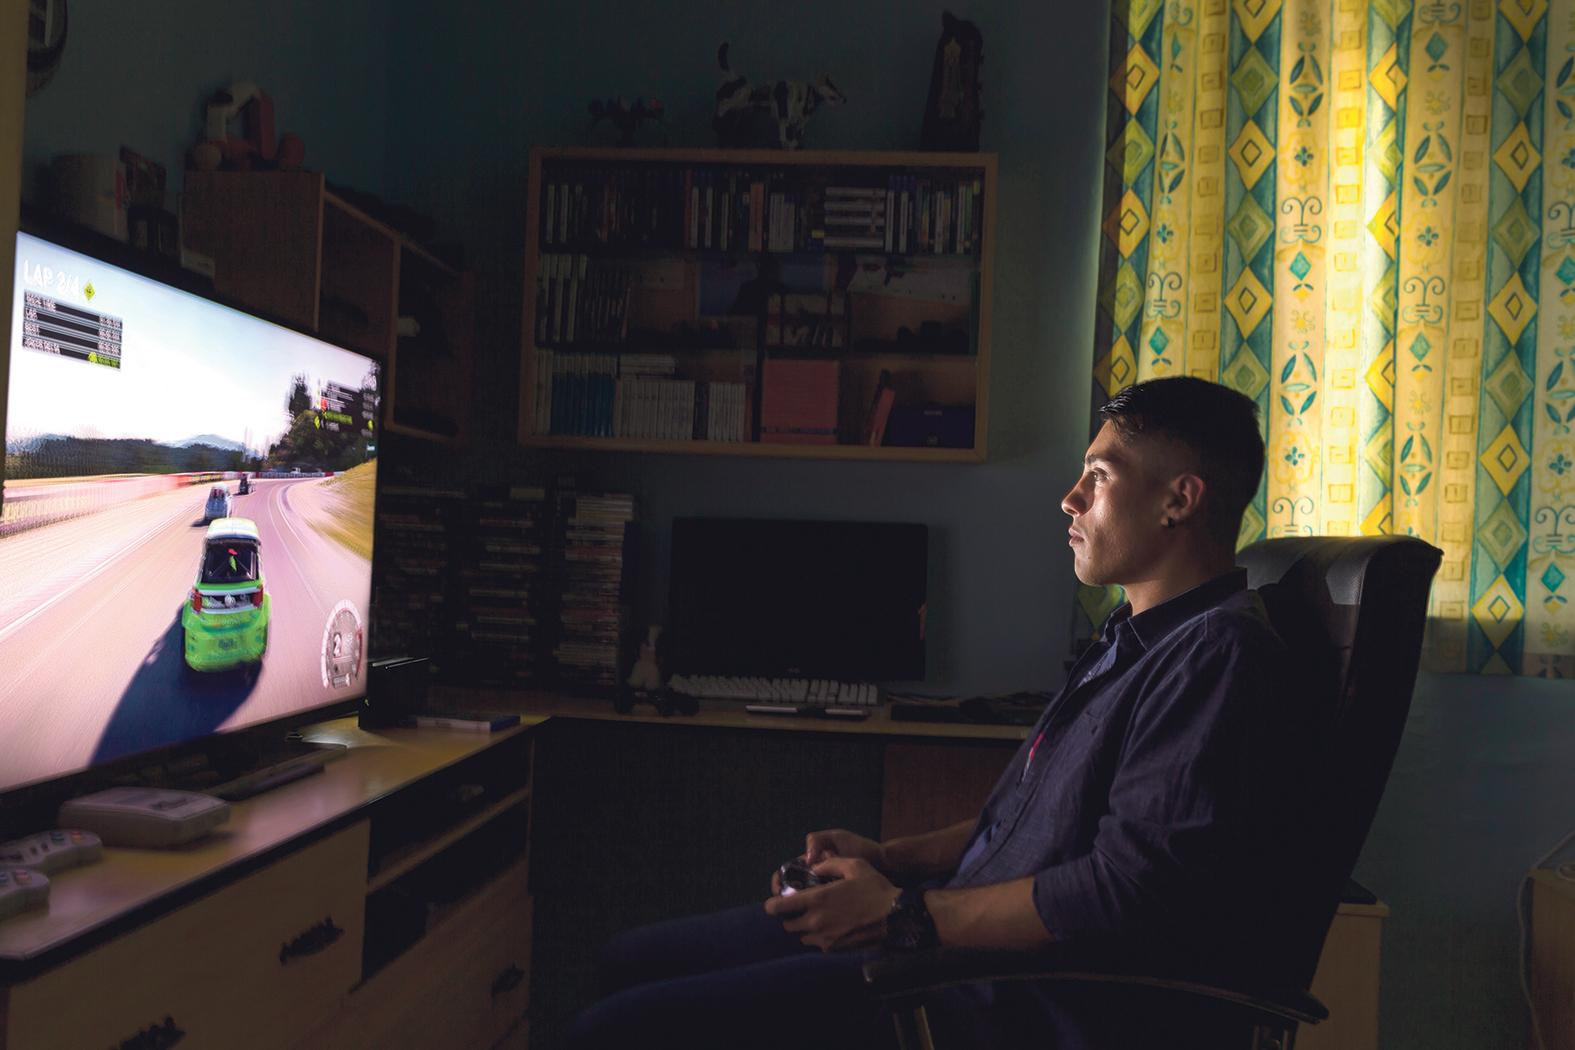 Blaine Schembri is autistic and has a passion for video games.